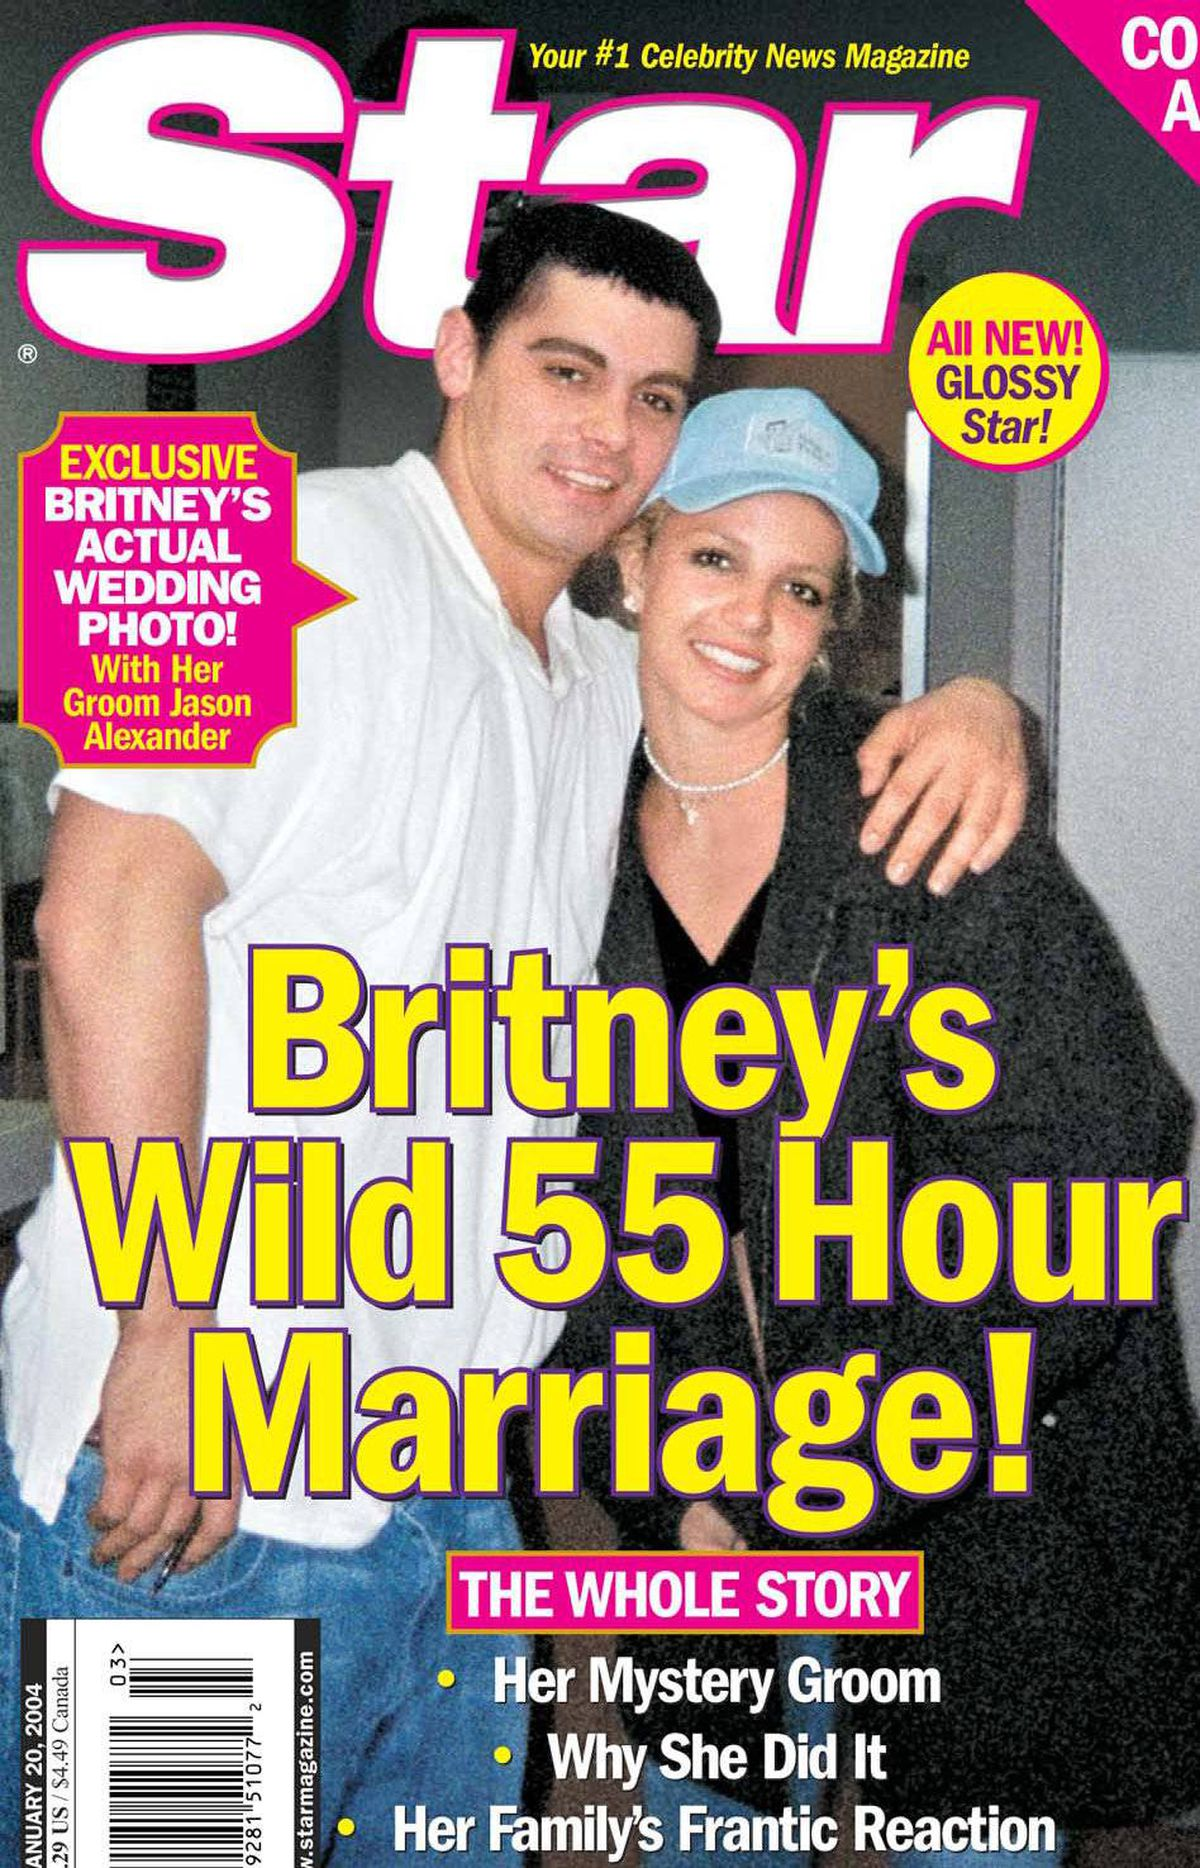 Britney Spears fed the tabloid mill in January 2004 when she married her childhood sweetheart, Jason Alexander, in a Las Vegas chapel. The marriage was annulled 55 hours later.